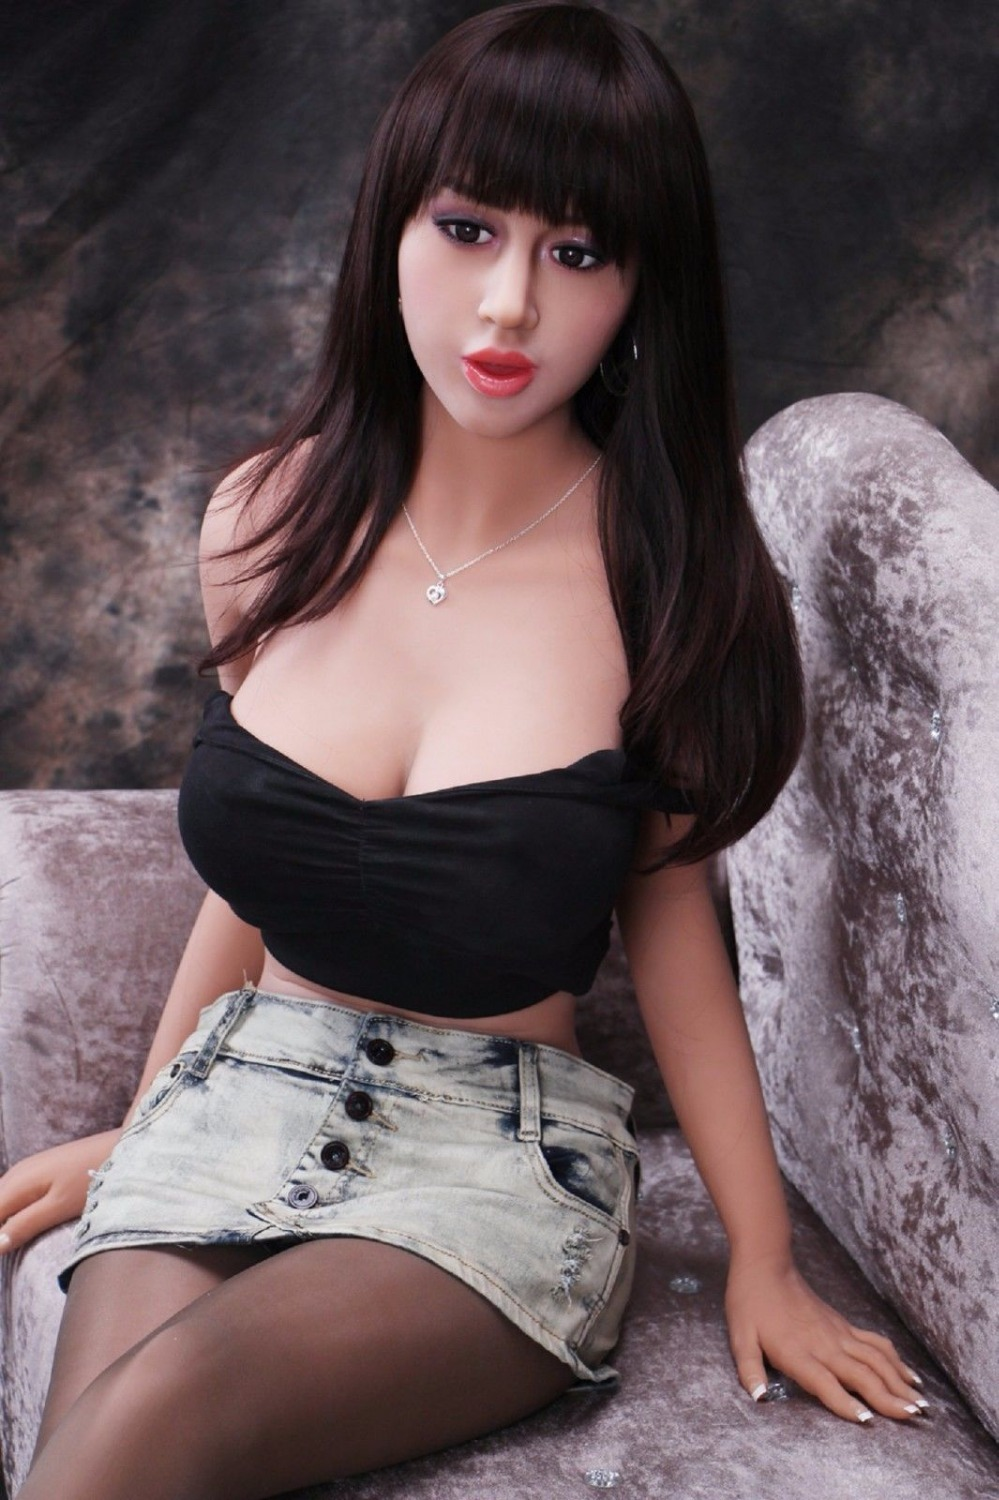 Silicone Oral Sex LOVE Doll sexy doll Realistic Ass Vagina big tits Lifelike Real 140cm 148cm 158cm 165cm doll jydoll